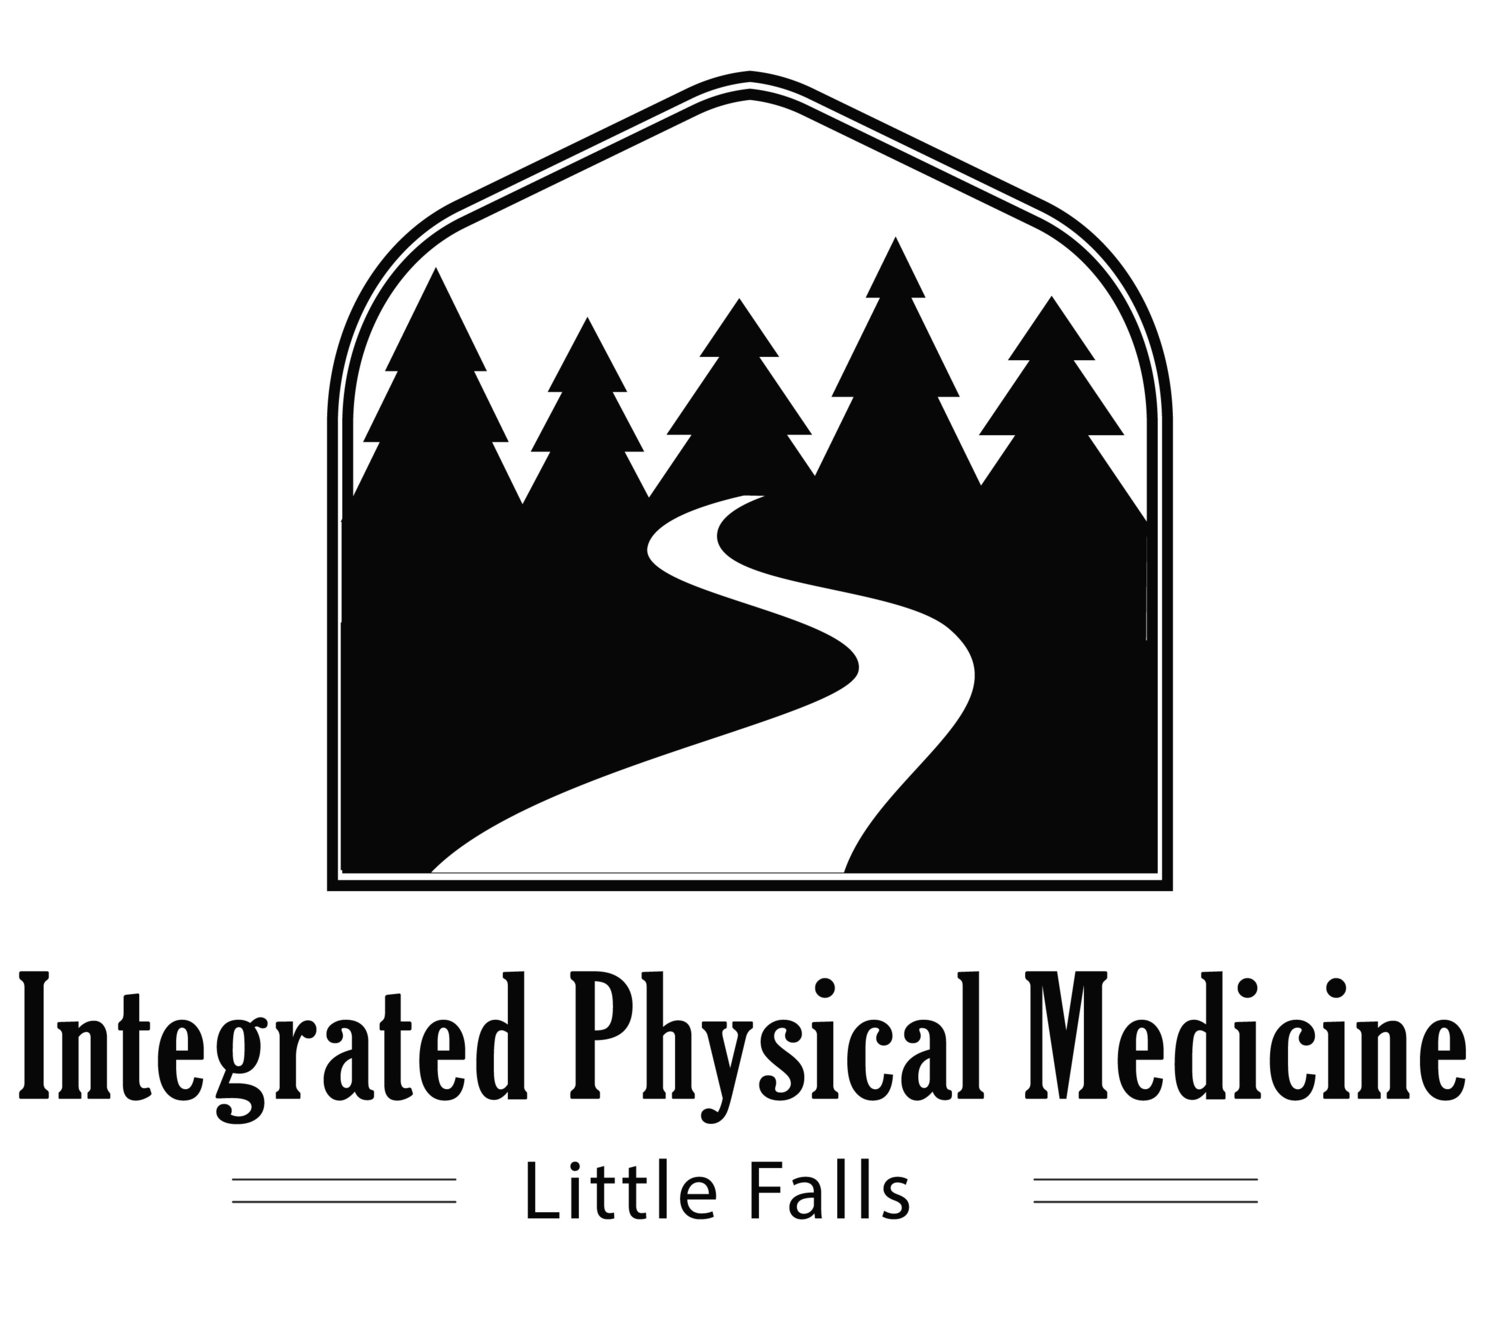 Little Falls Integrated Physical Medicine